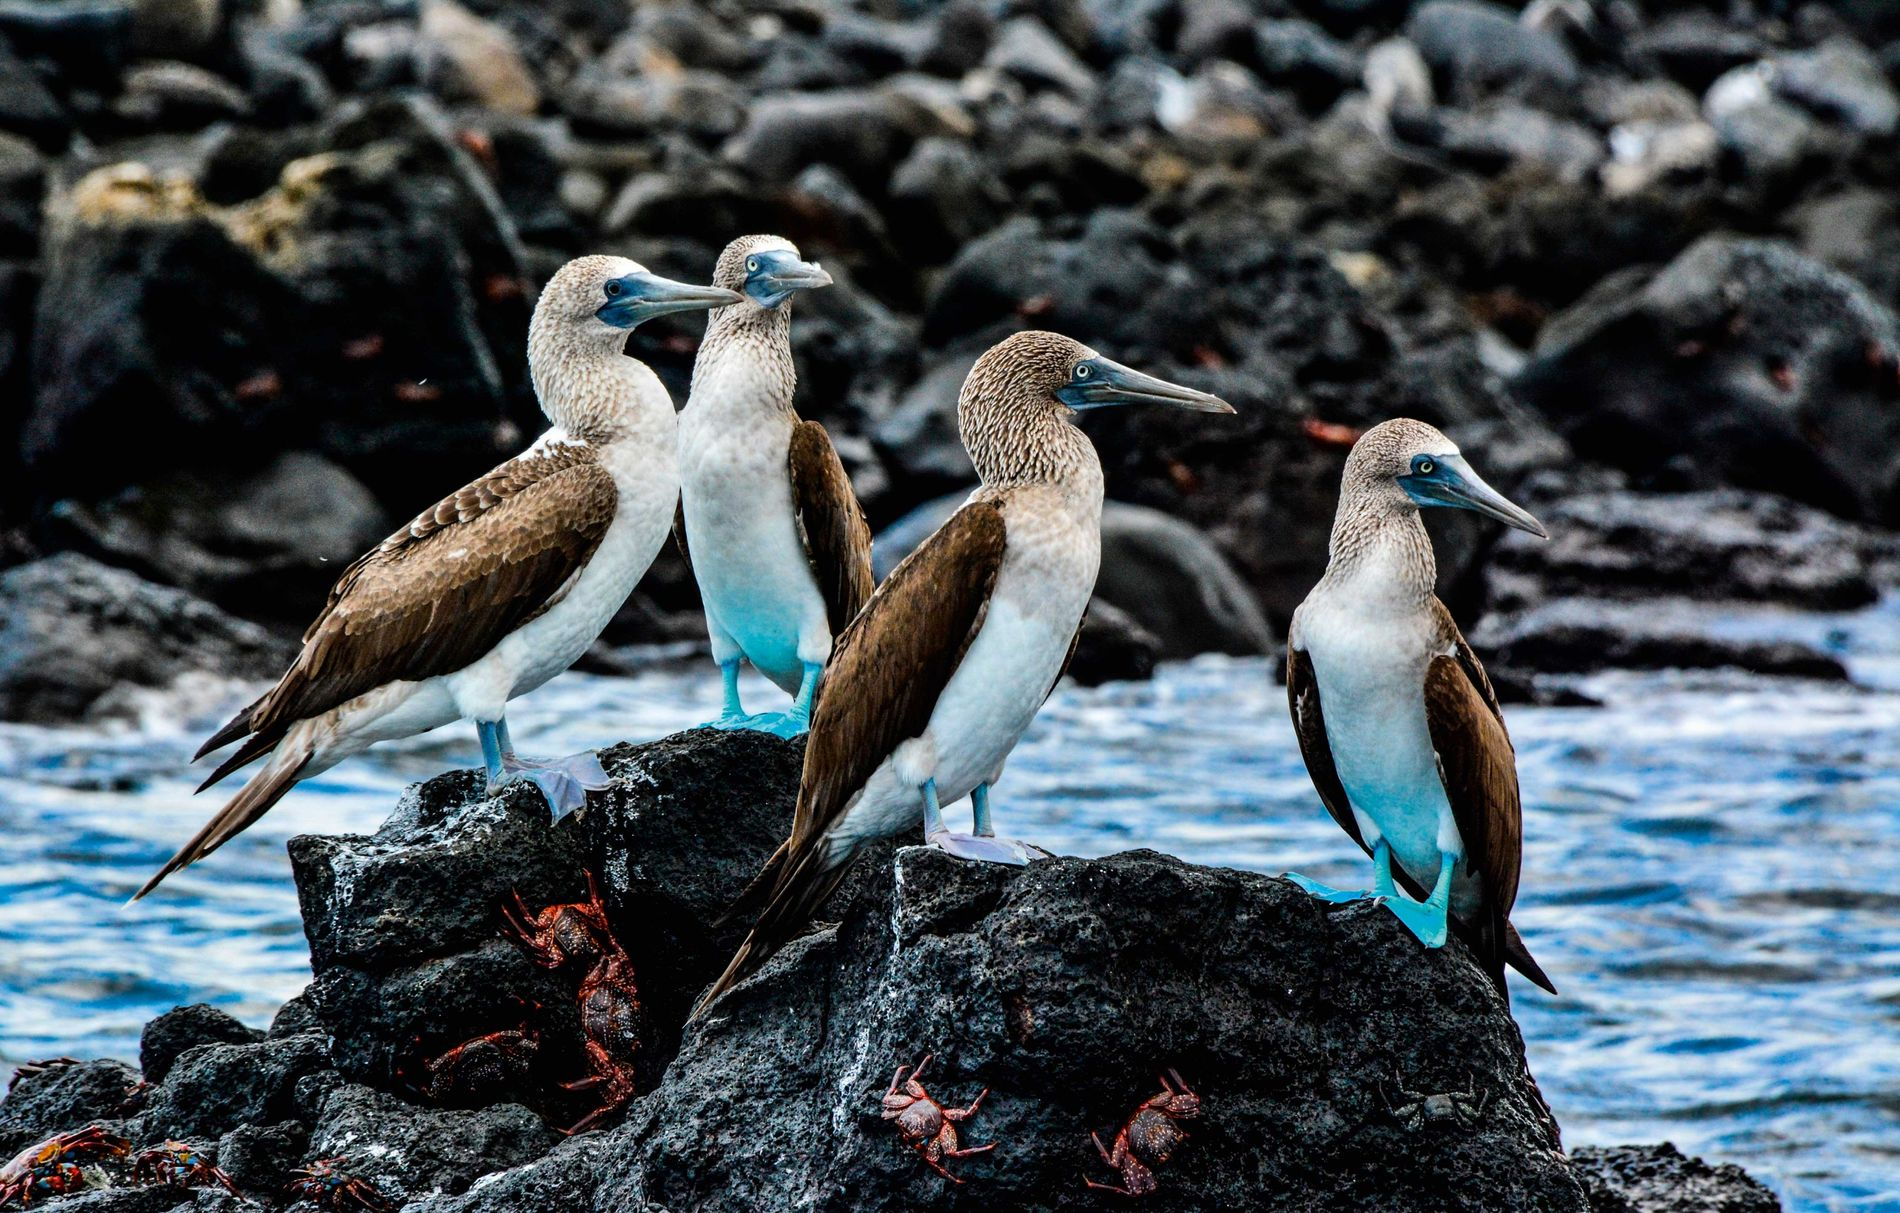 The island of Daphne Major is home to a winged menagerie: red-billed tropicbirds, pelicans, gannets and ...